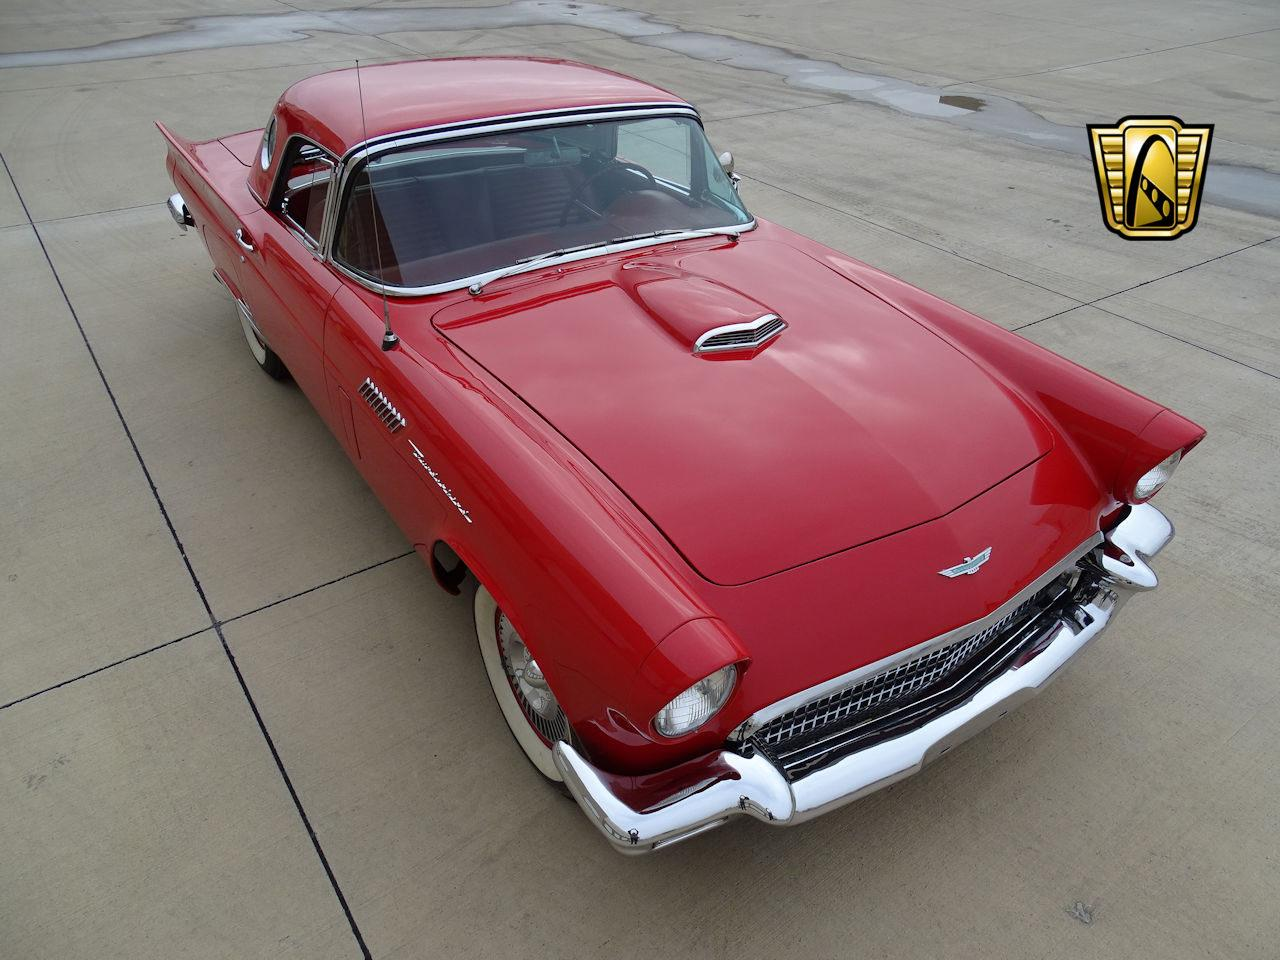 Large Picture of 1957 Ford Thunderbird - $35,995.00 Offered by Gateway Classic Cars - Dallas - MZF2